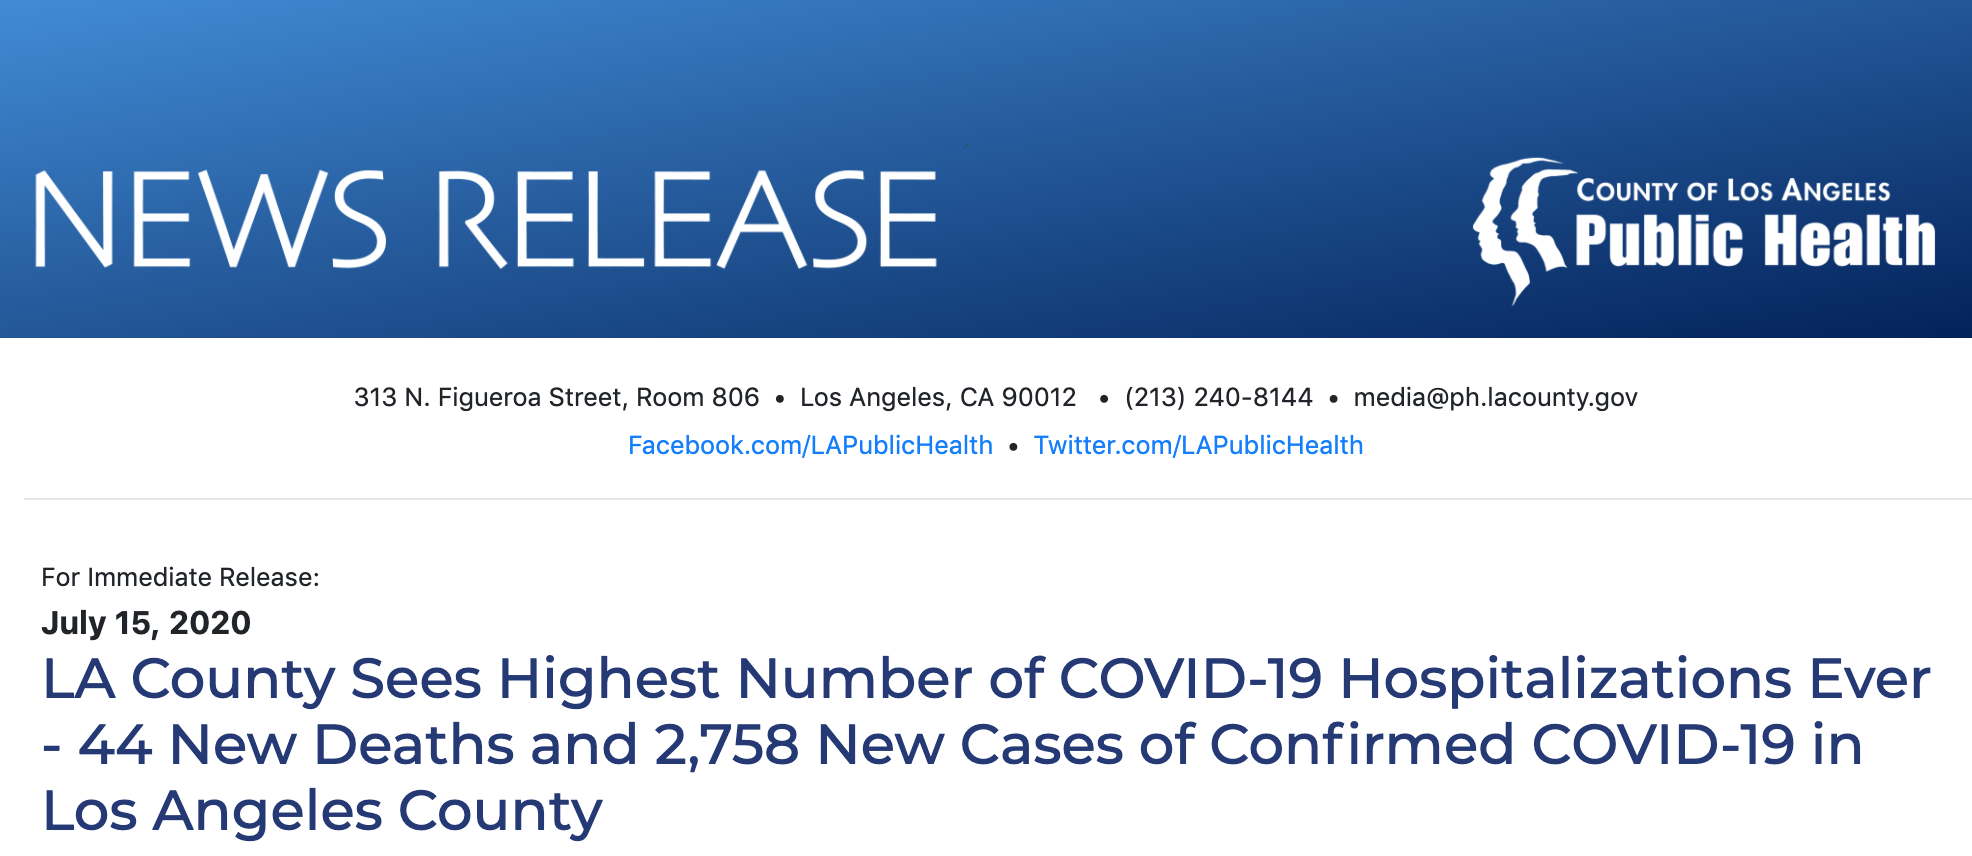 LA County Sees Highest Number of COVID-19 Hospitalizations Ever - 44 New Deaths and 2,758 New Cases